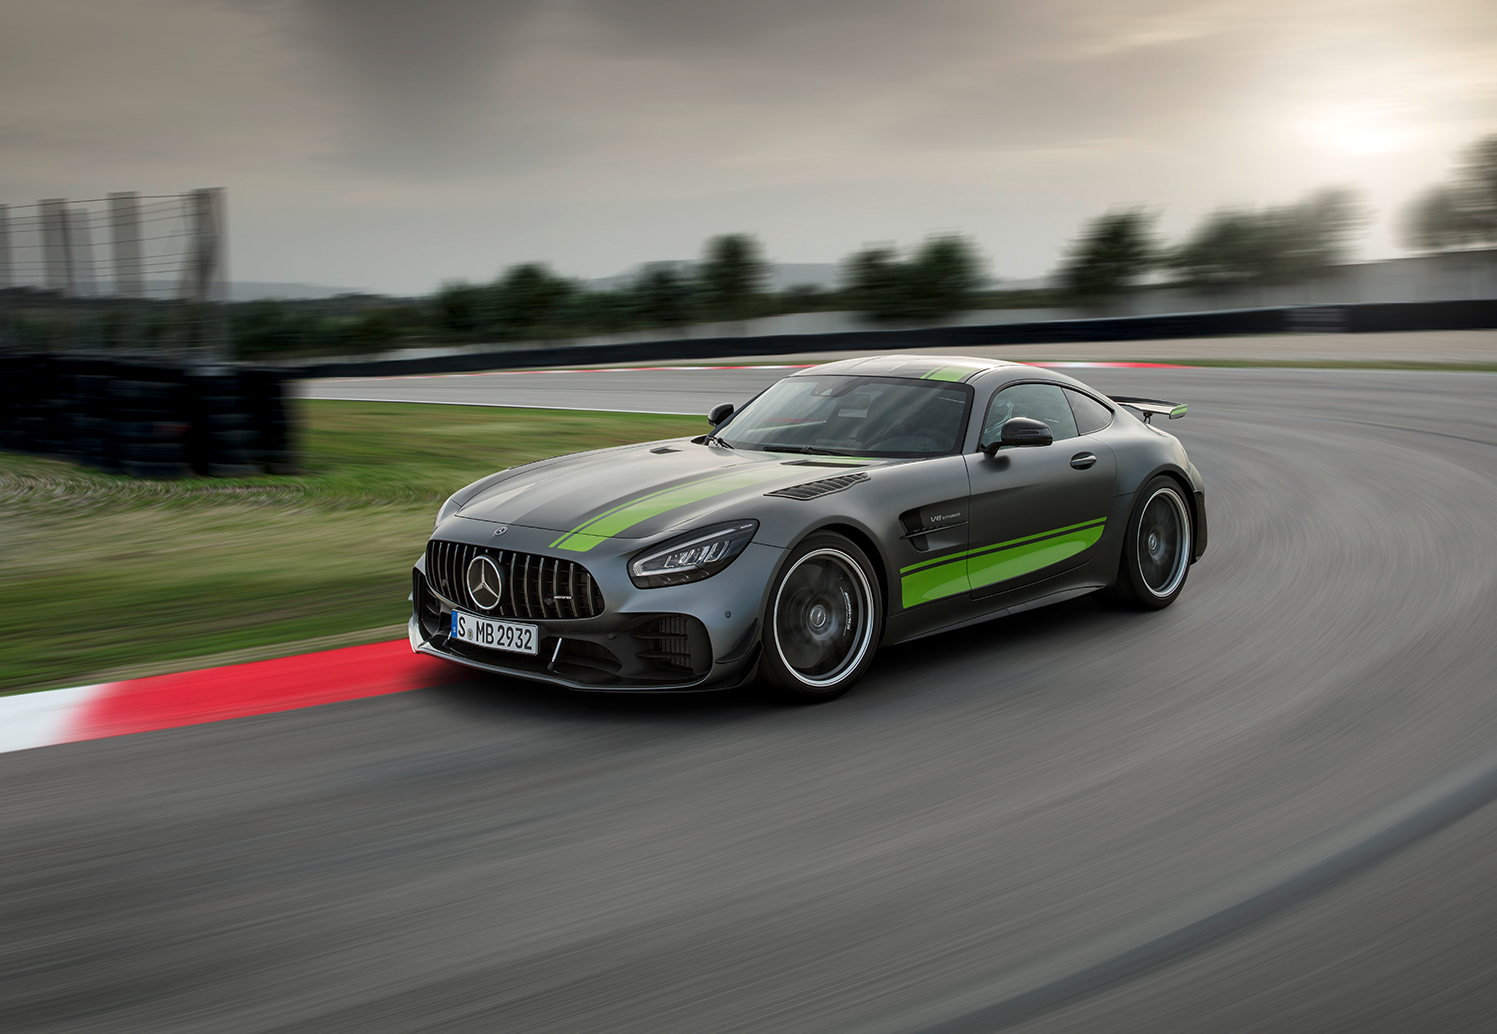 updated mercedes amg gt and amg gt r pro unveiled in los angeles trackworthy. Black Bedroom Furniture Sets. Home Design Ideas